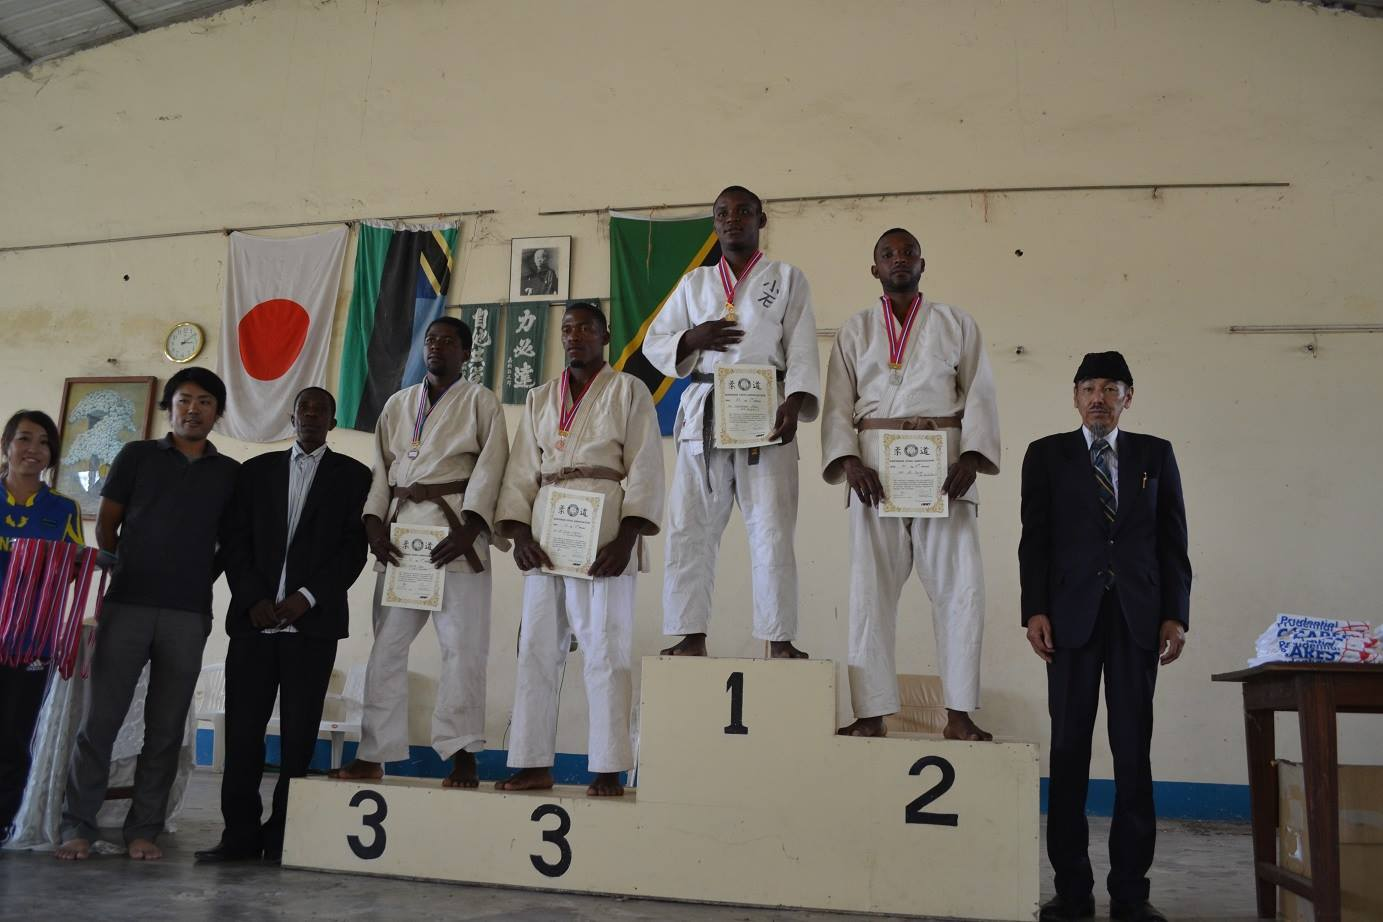 ZANZIBAR WEGHT CATEGORY JUDO CHAMPIONSHIP2018~ザンジバル柔道選手権大会2018_a0088841_10362680.jpg